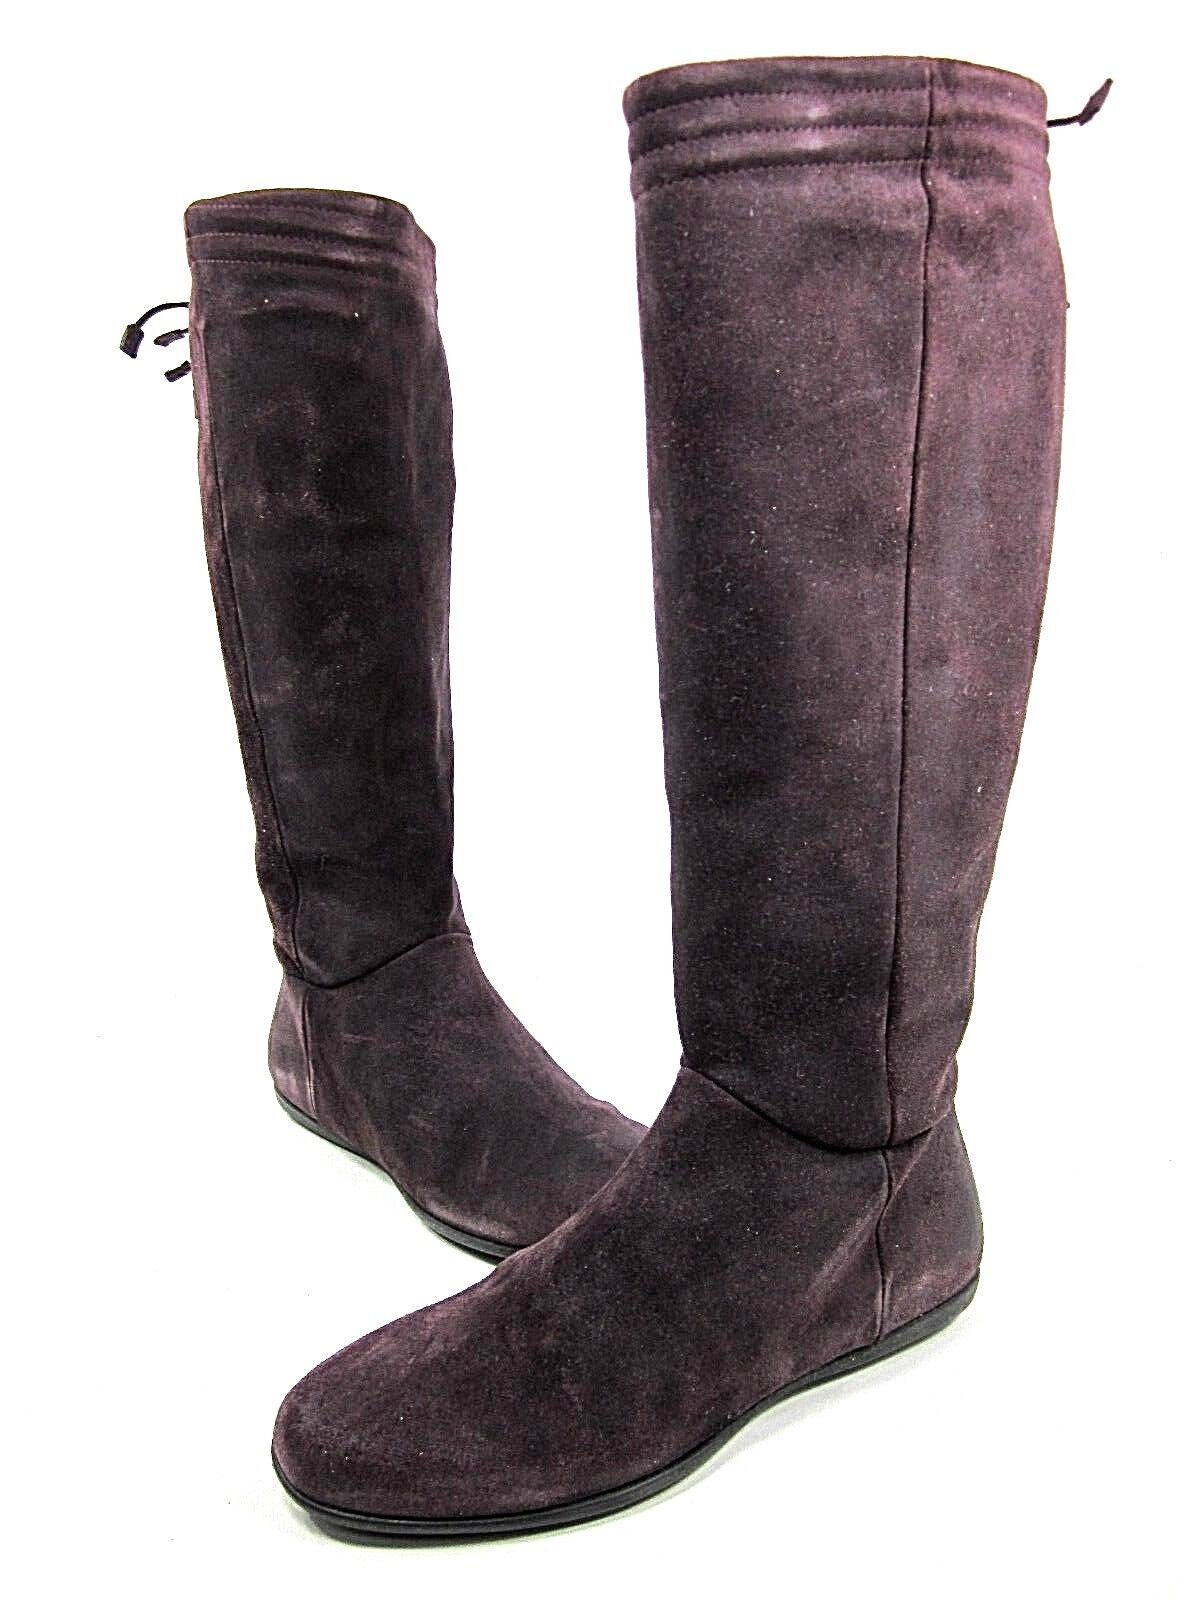 NARA SHOES, KEEPER KNEE-HIGH BOOT, WOMEN'S, BOX BORDO, US 9.5M, NEW WITHOUT BOX